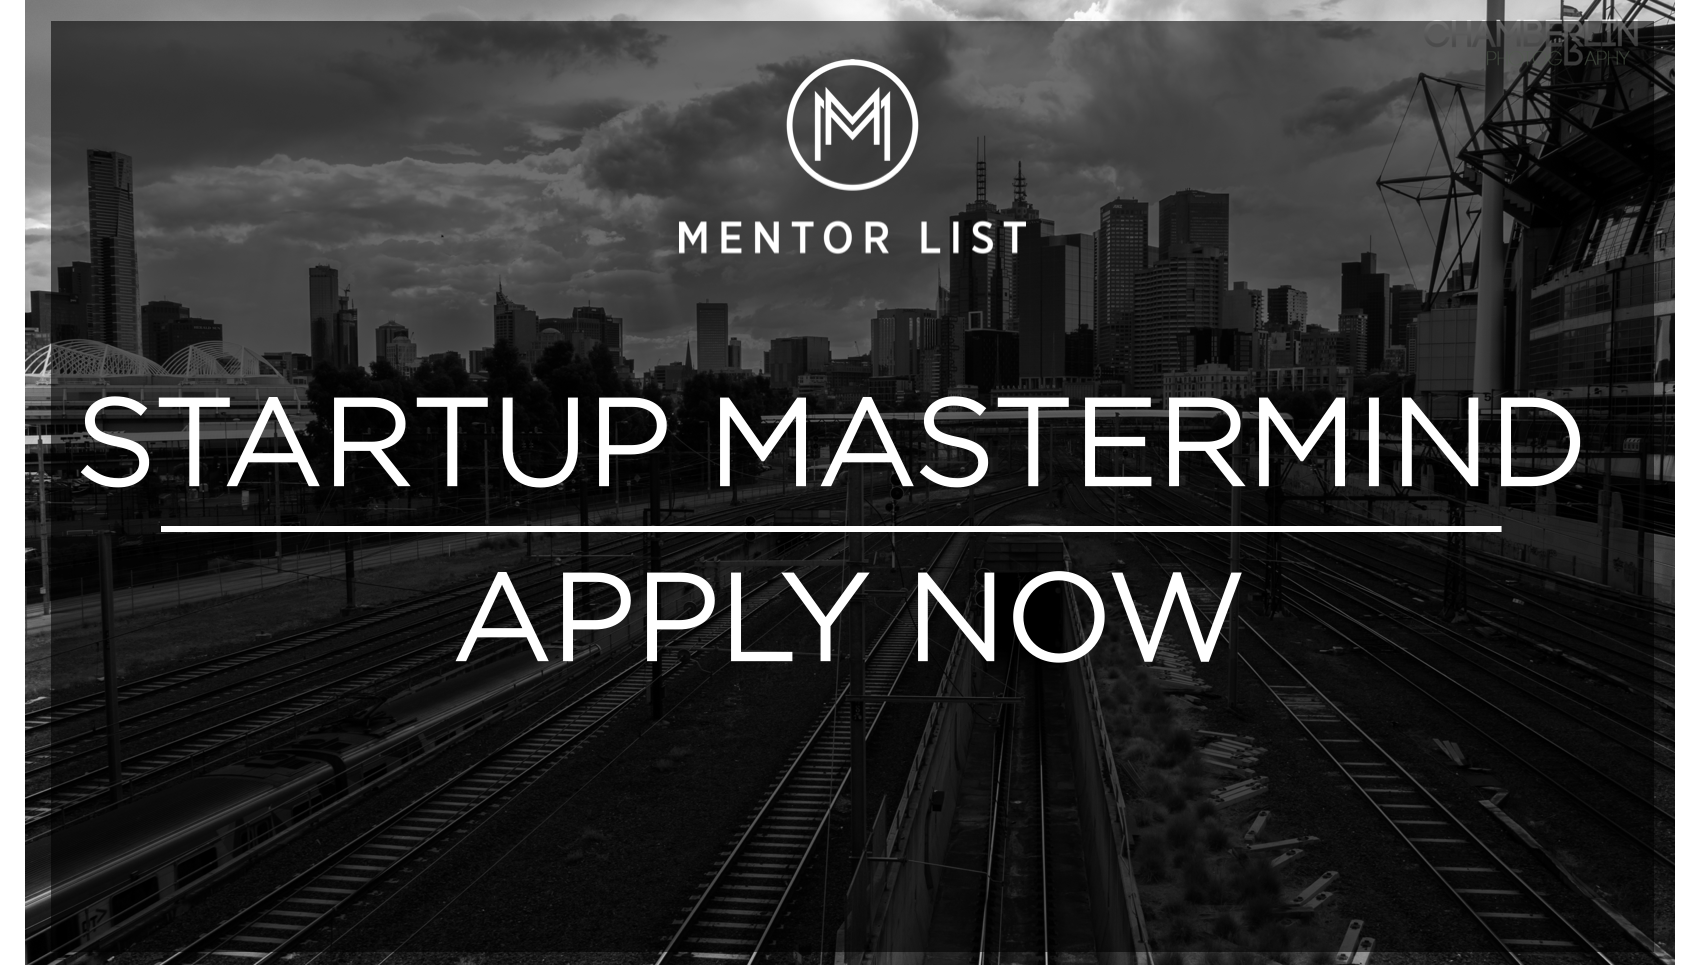 Startup Mastermind Apply Now.png